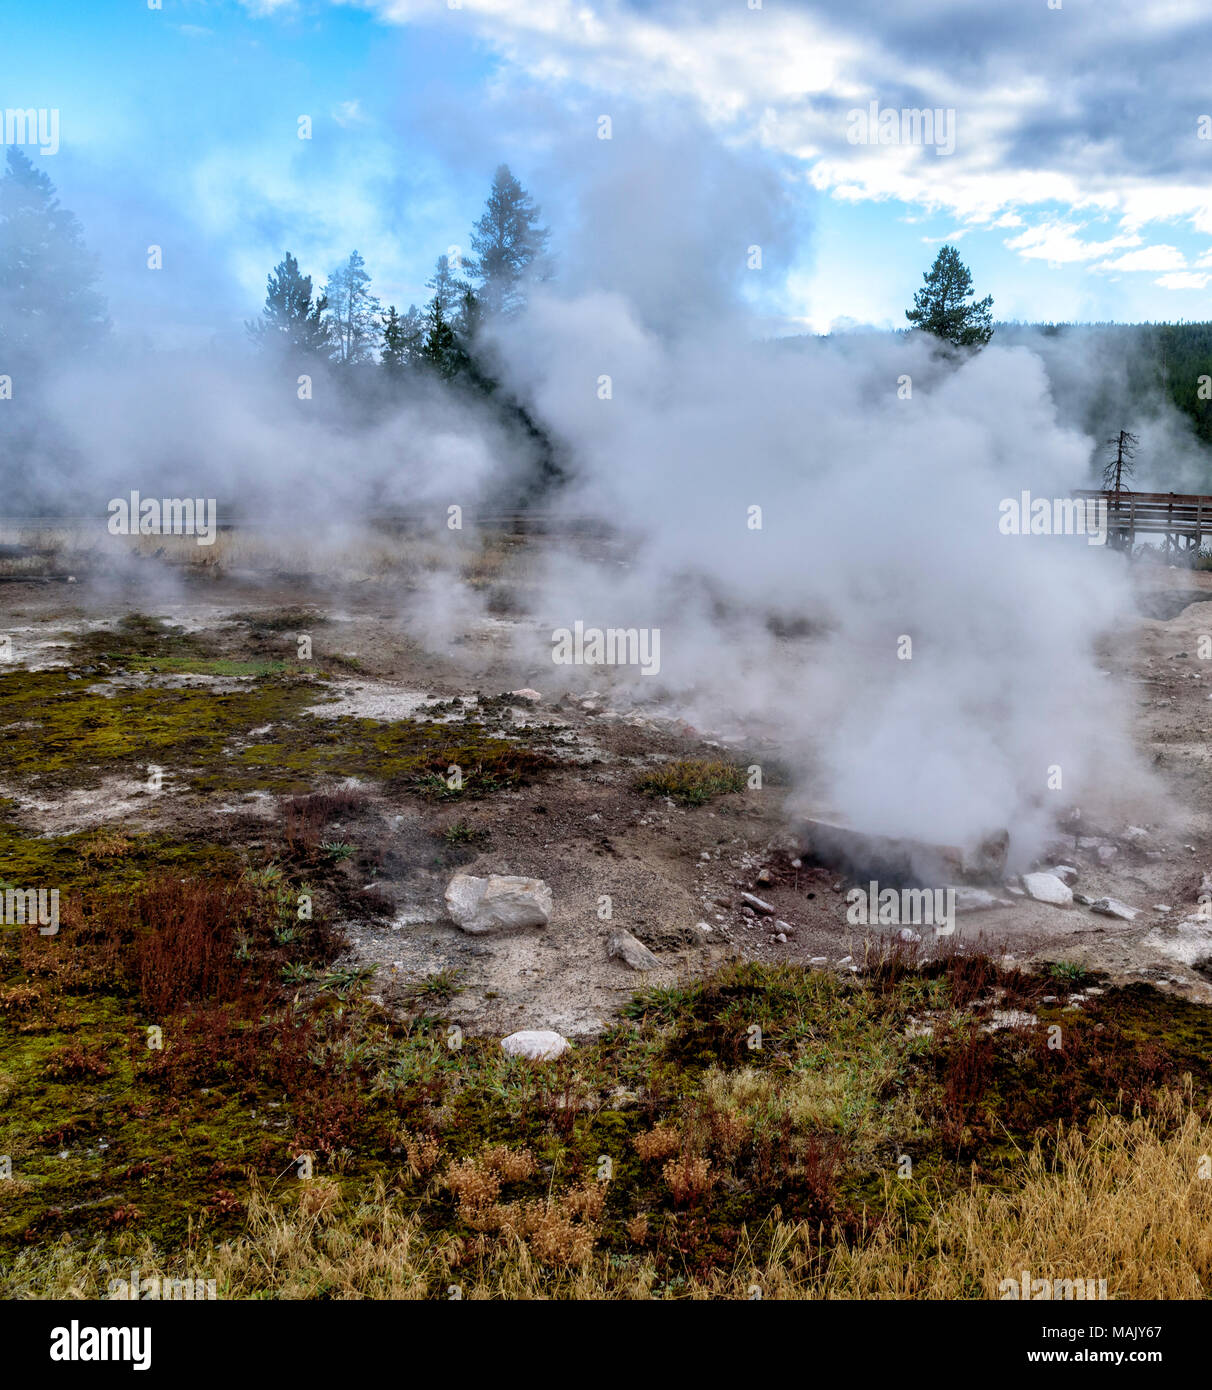 Hot steam and gas rising up out of the ground in clearing of rocks and dead grass in Yellowstone. - Stock Image